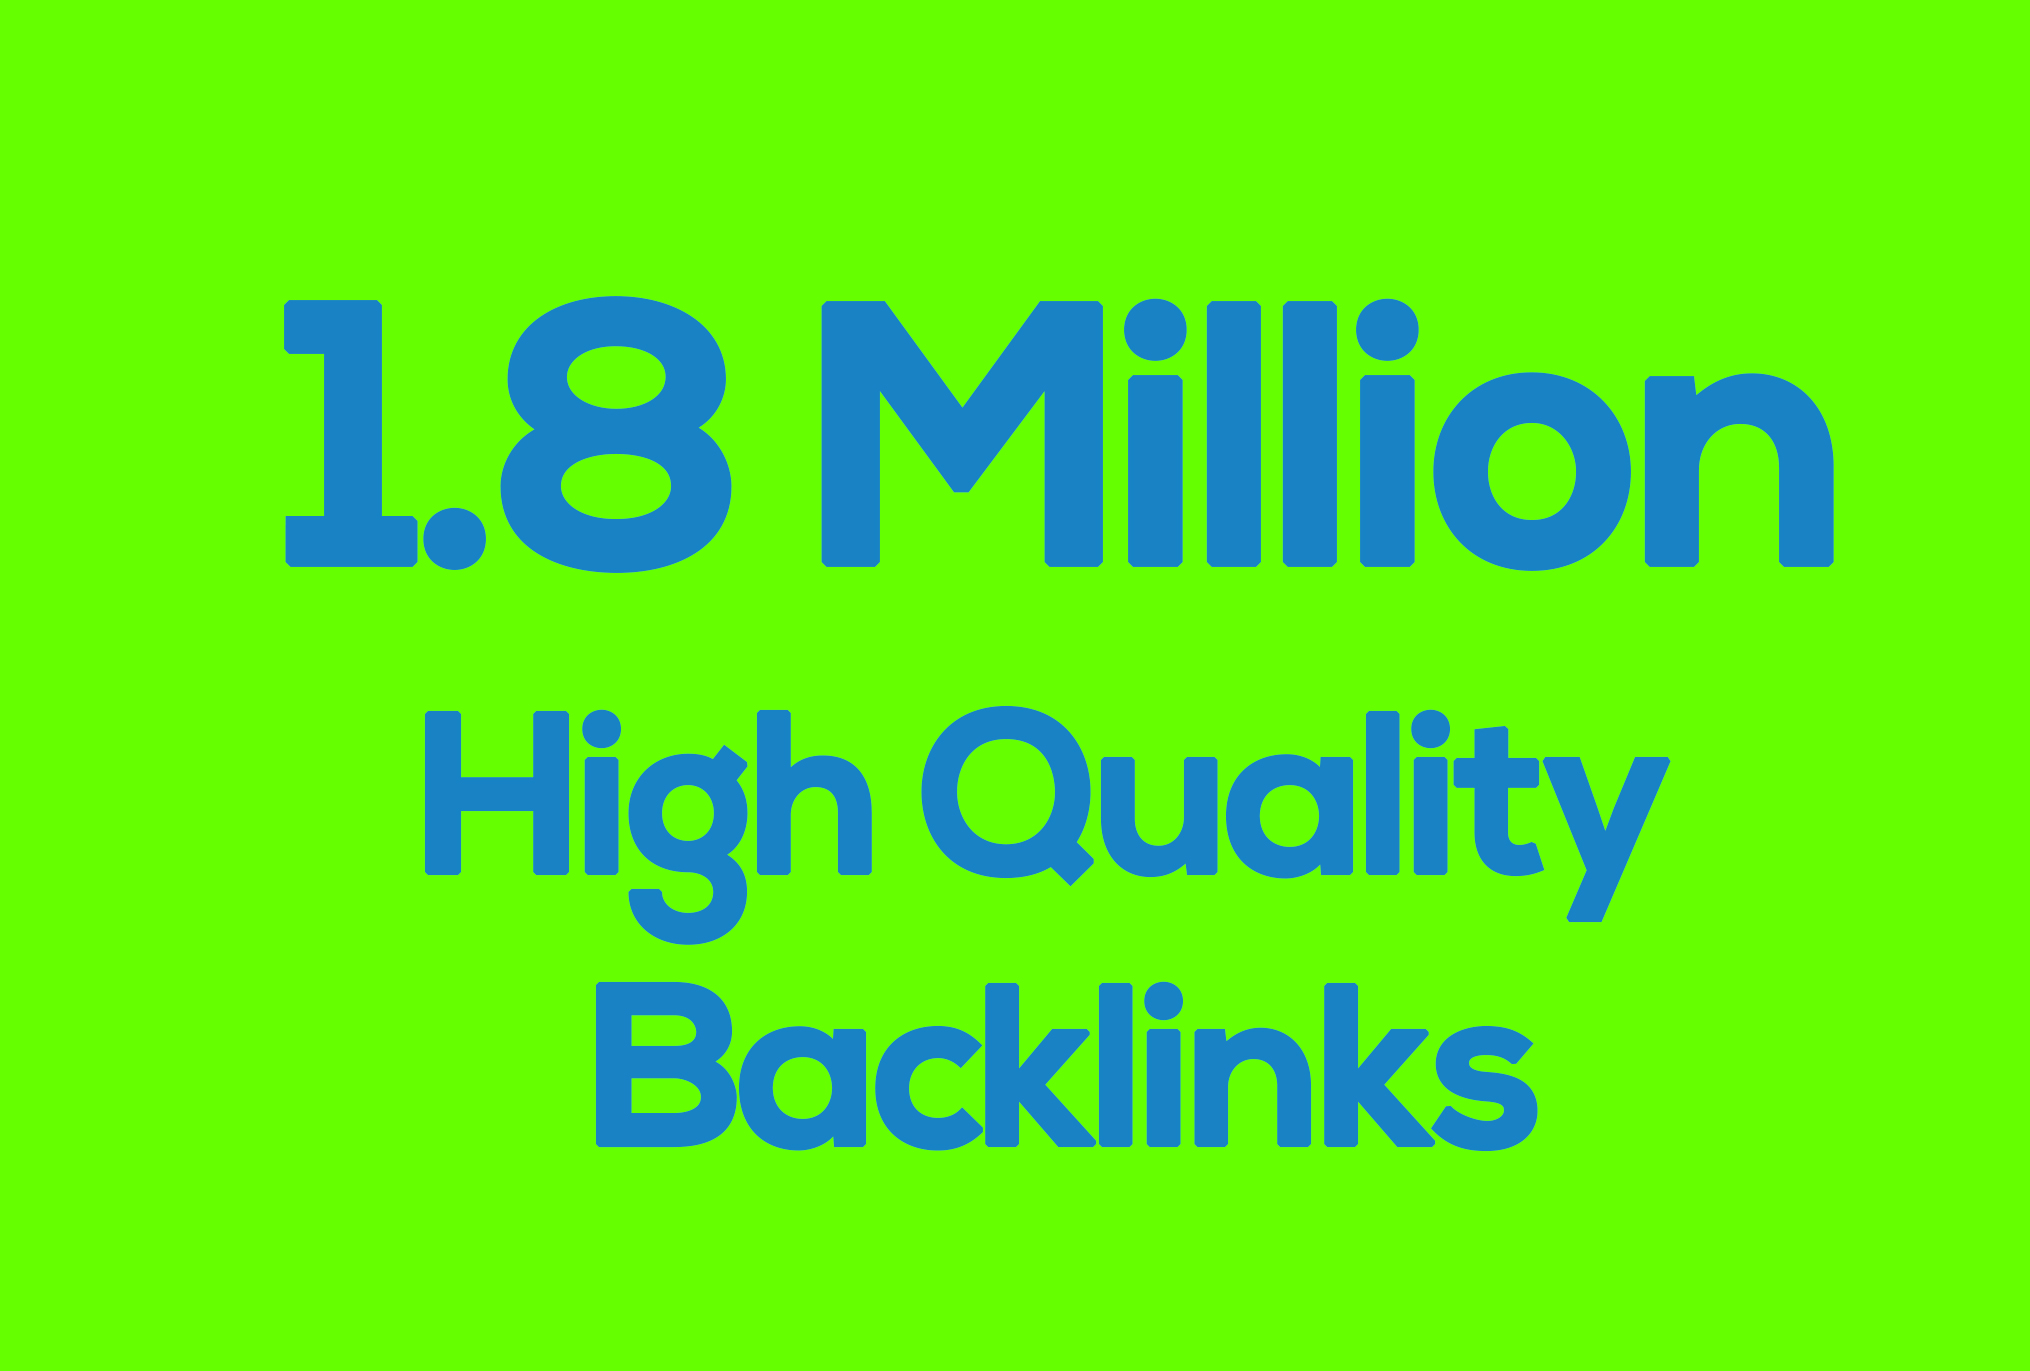 1.8 Million High quality GSA SEO Backlinks